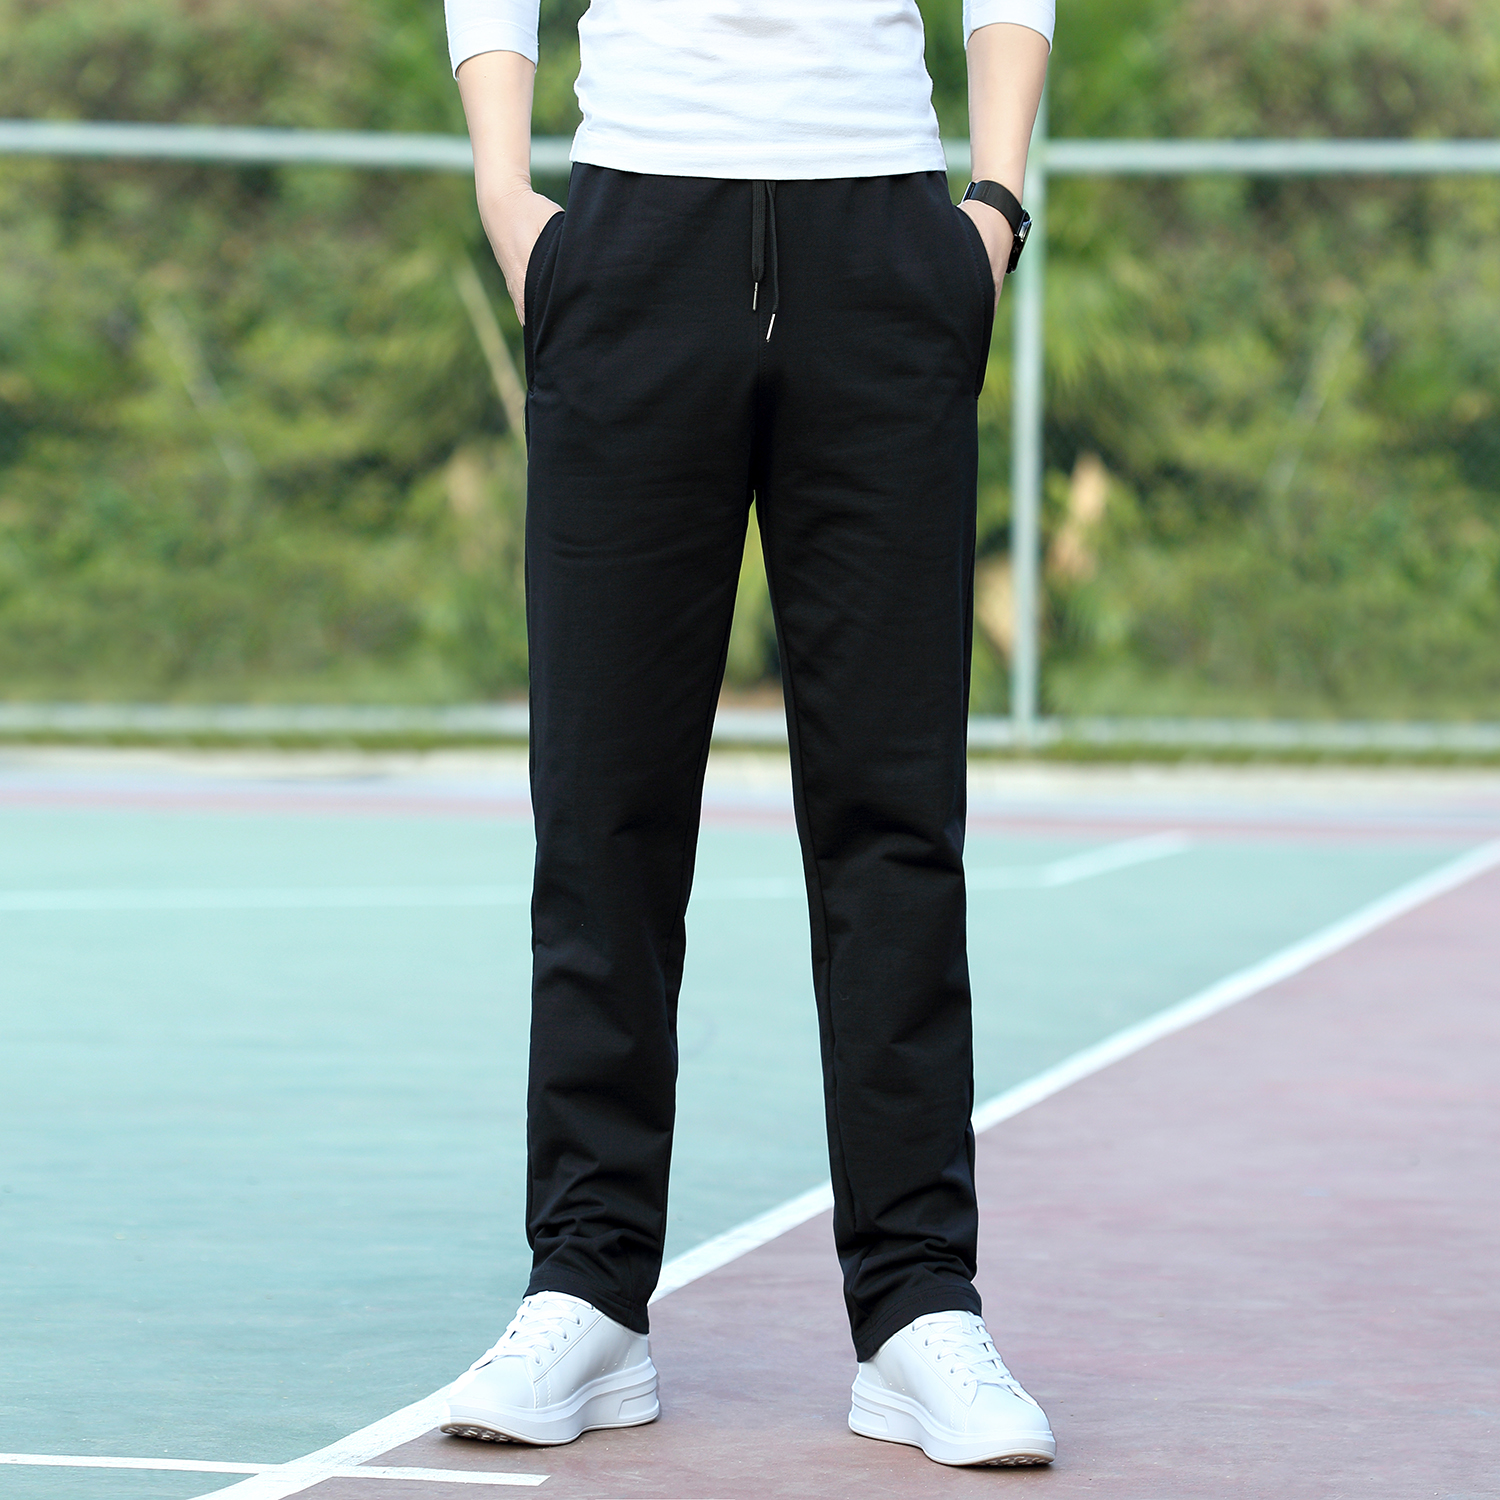 Personalized elastic large color contrast 2019 morning exercise Europe and America autumn summer camouflage jogging pants mens casual pants